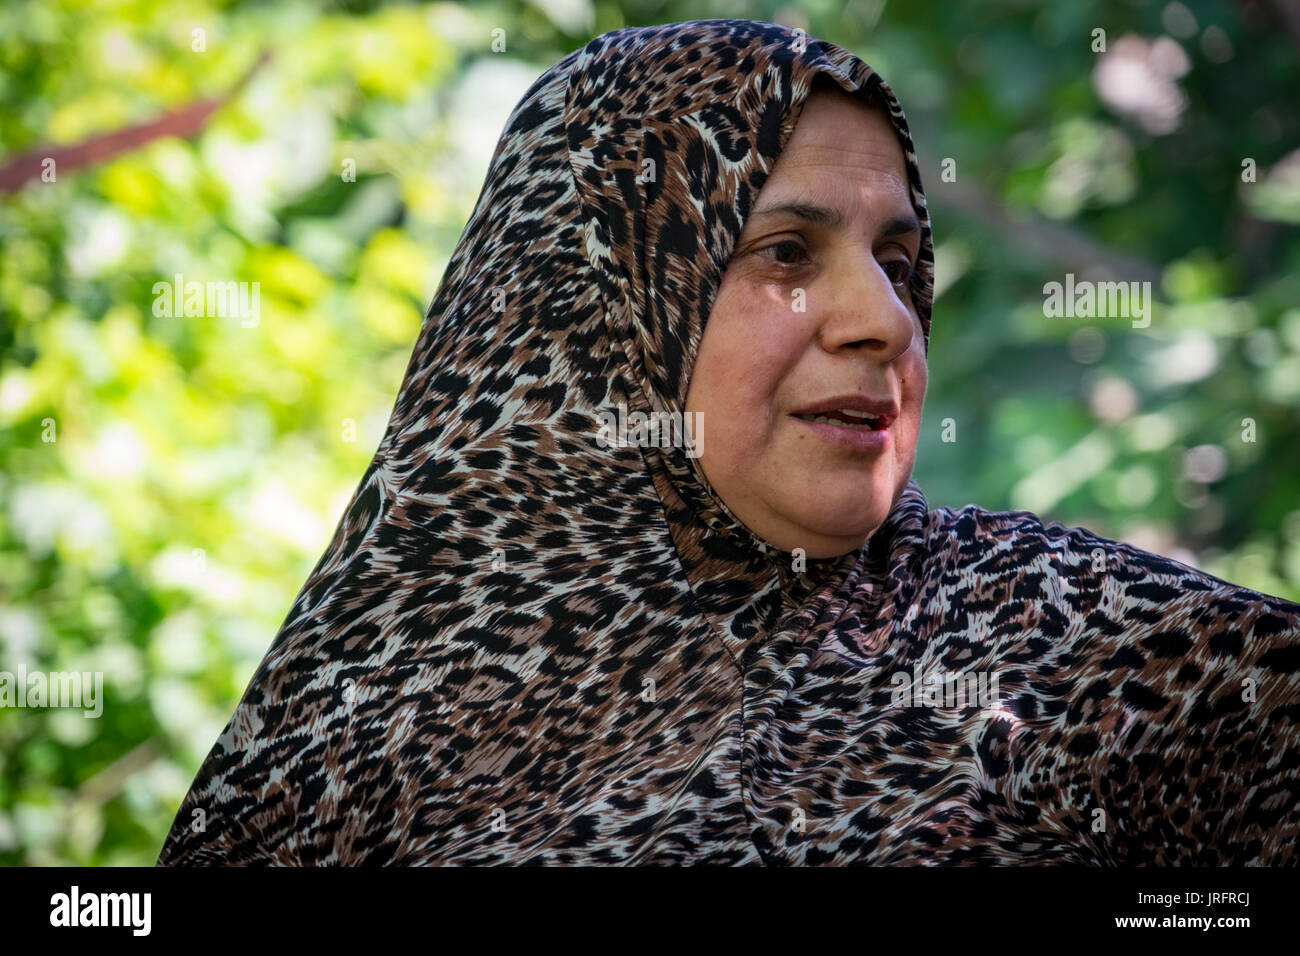 A Palestinian mother describes the harassment she has experienced at the hands of the Israeli settlers living next door in Hebron, Occupied Territory - Stock Image